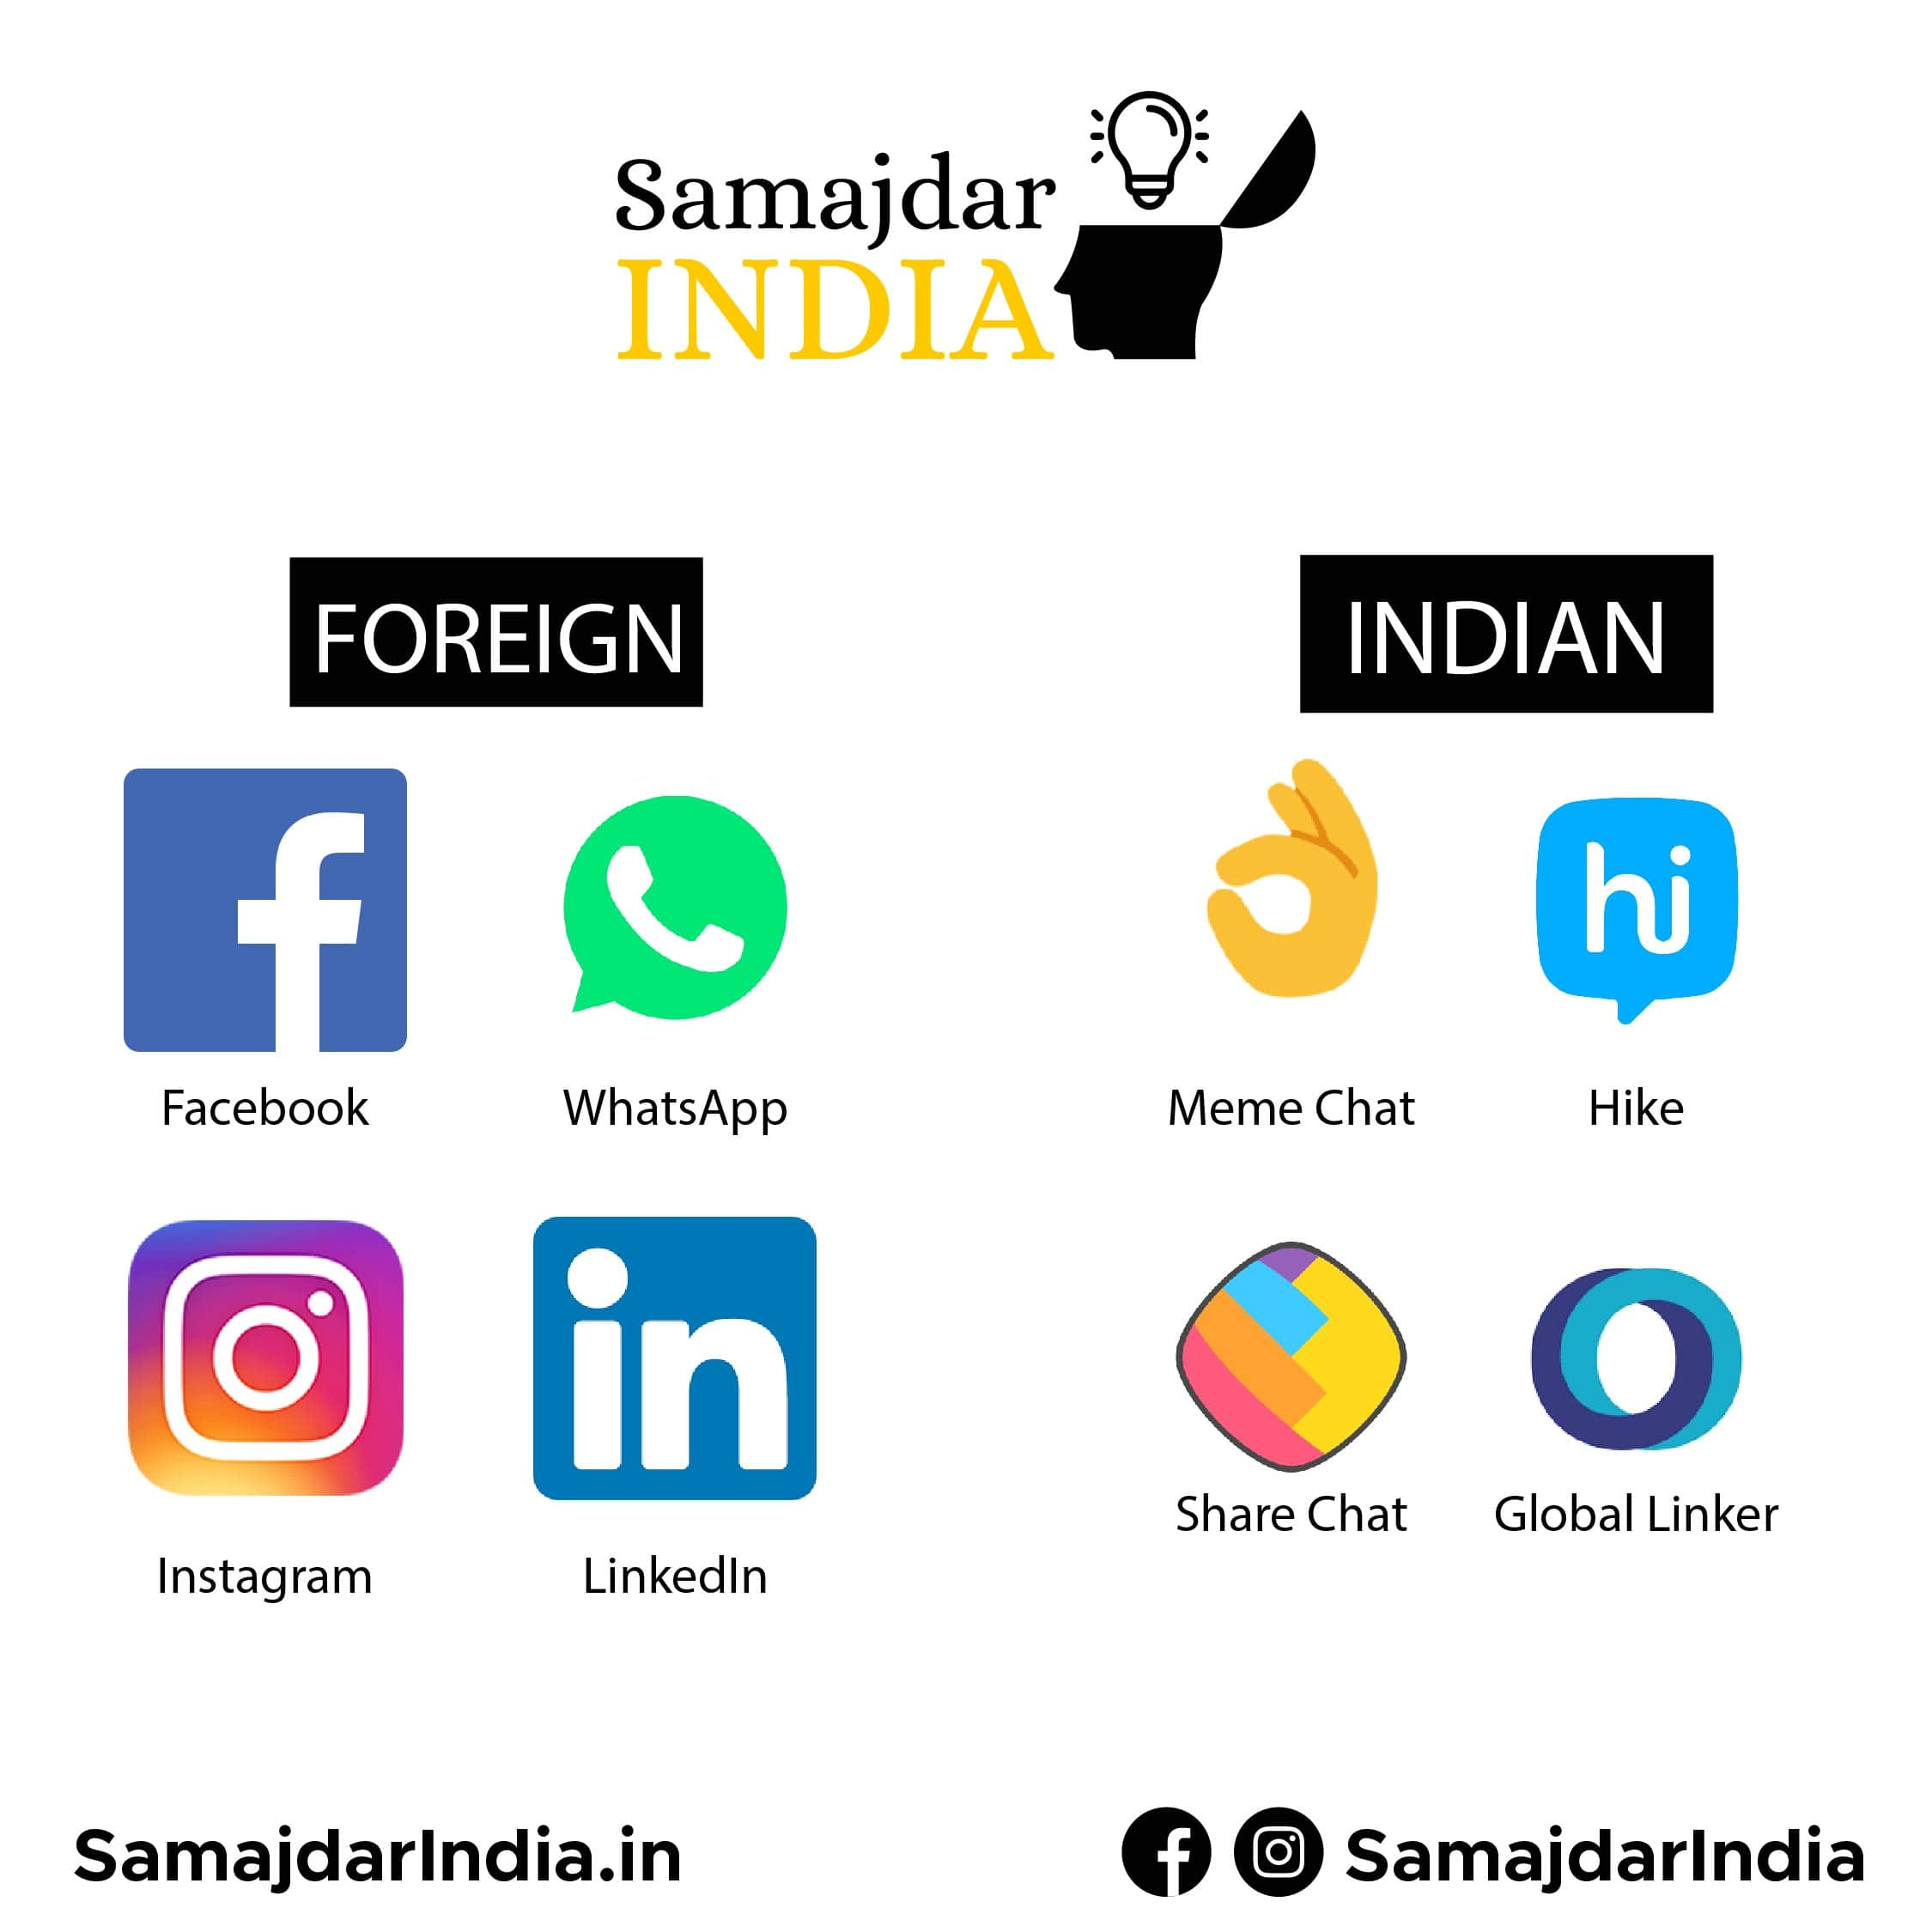 Indian Social Networks